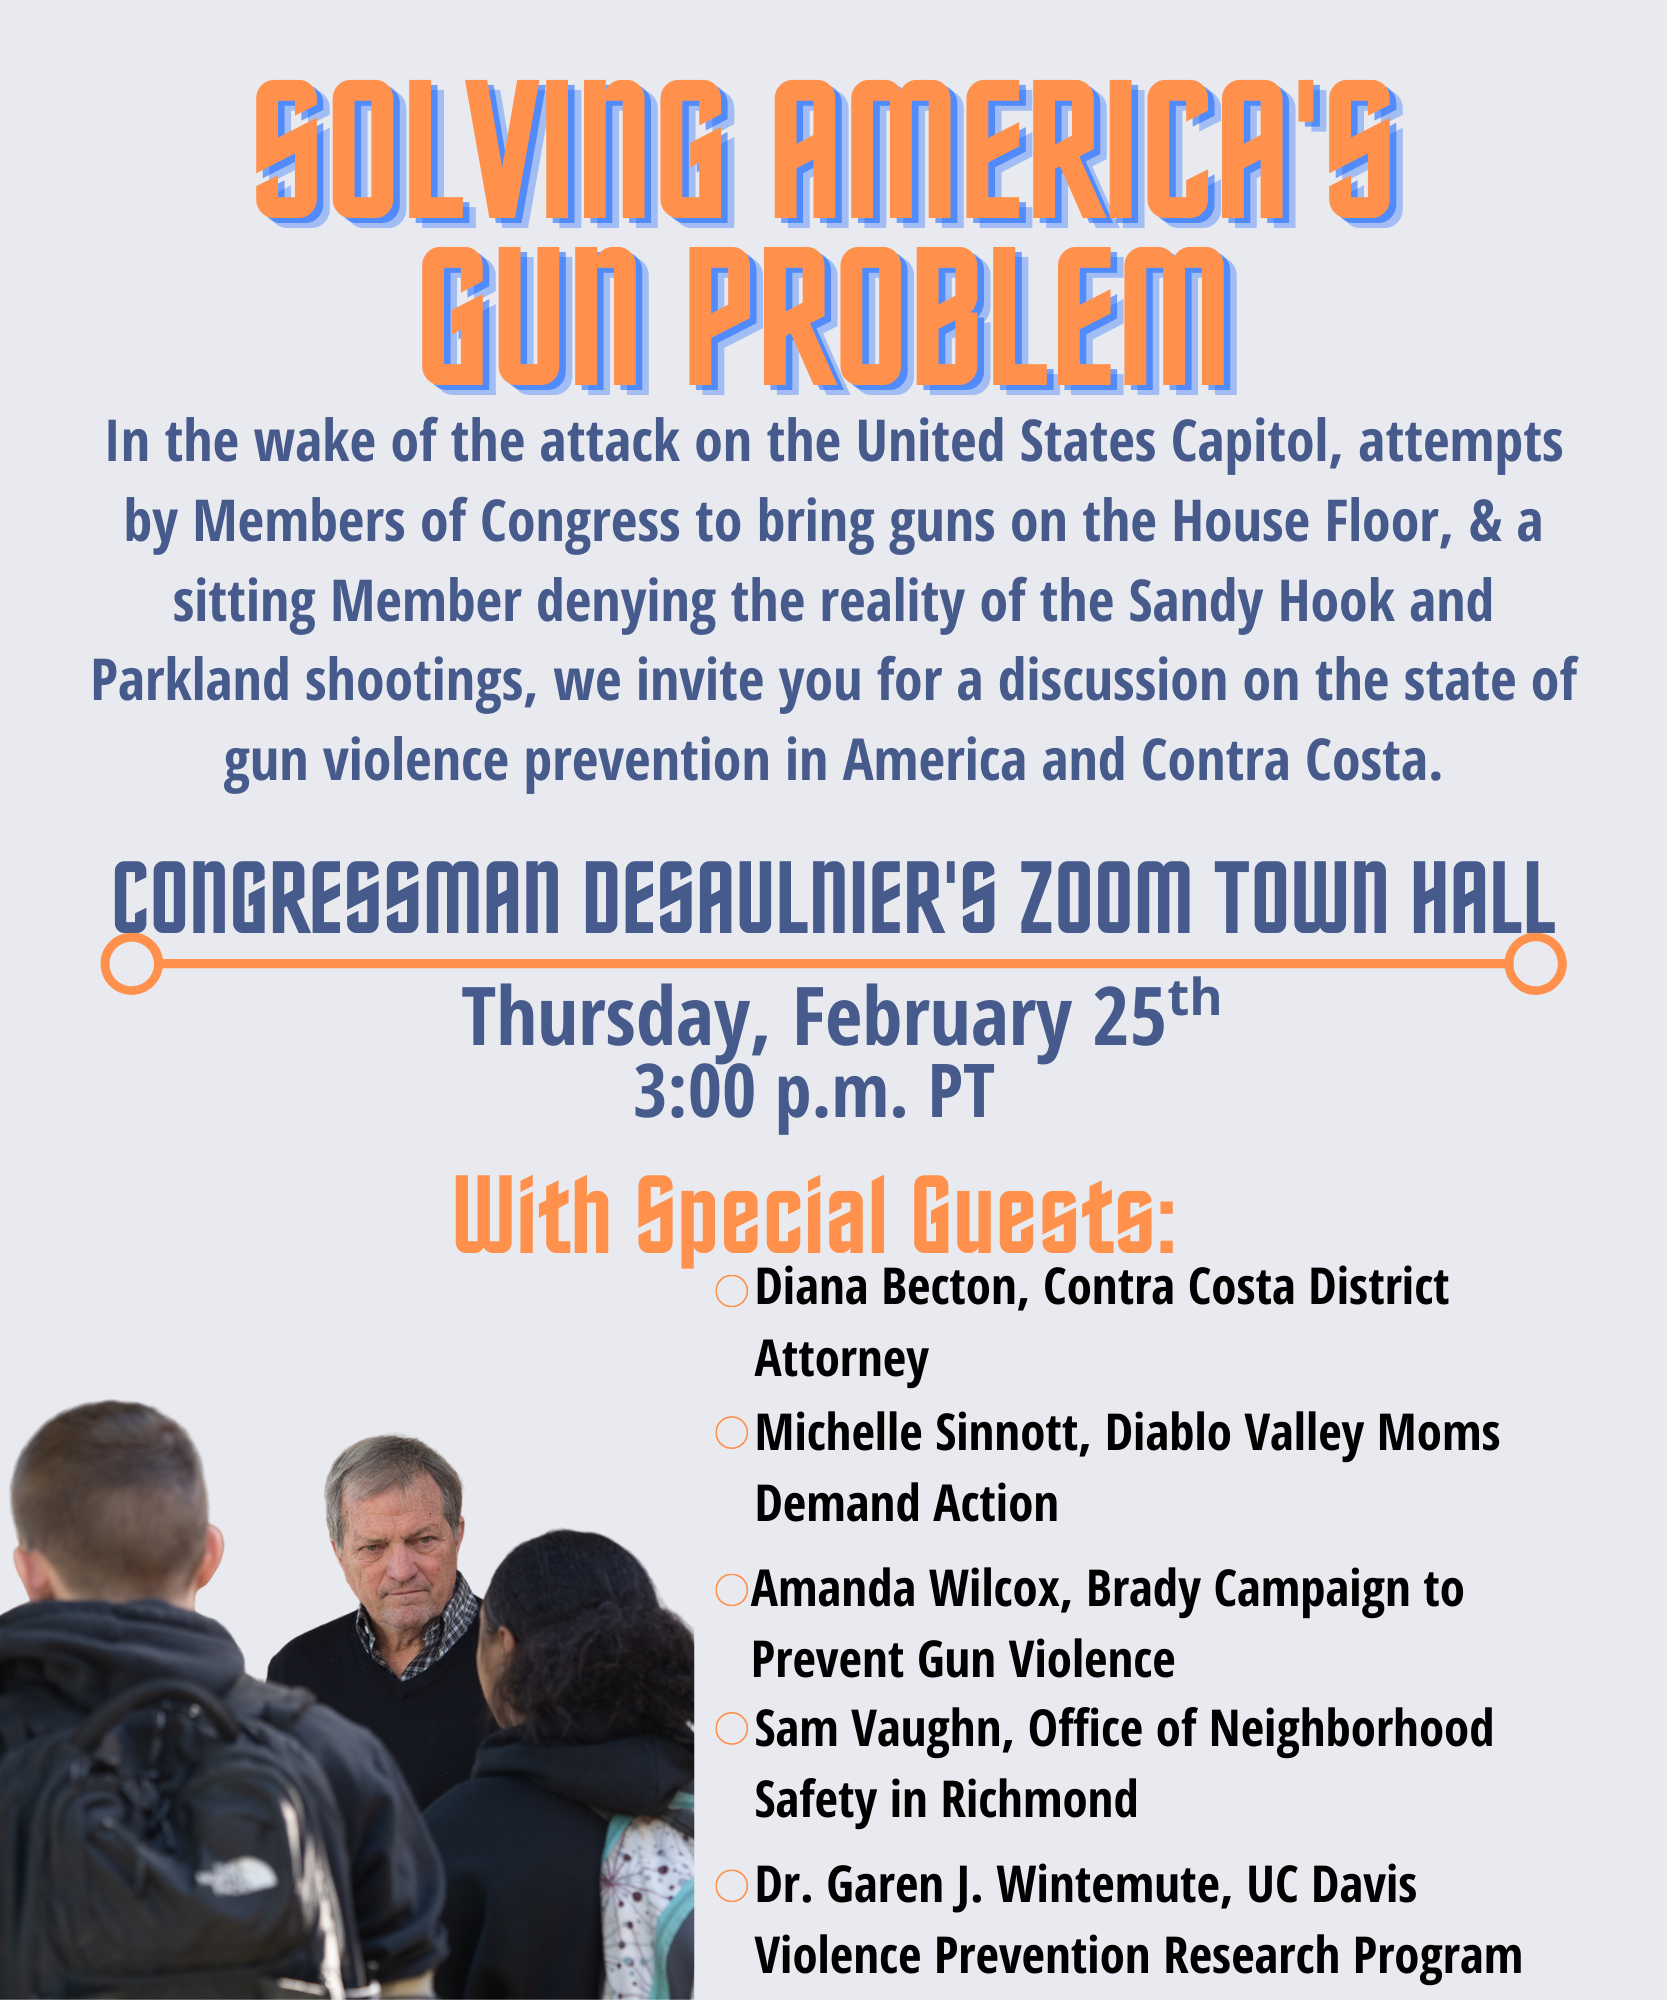 Solving America's Gun Problem – Attend  Congressman Desaulnier's Town Hall